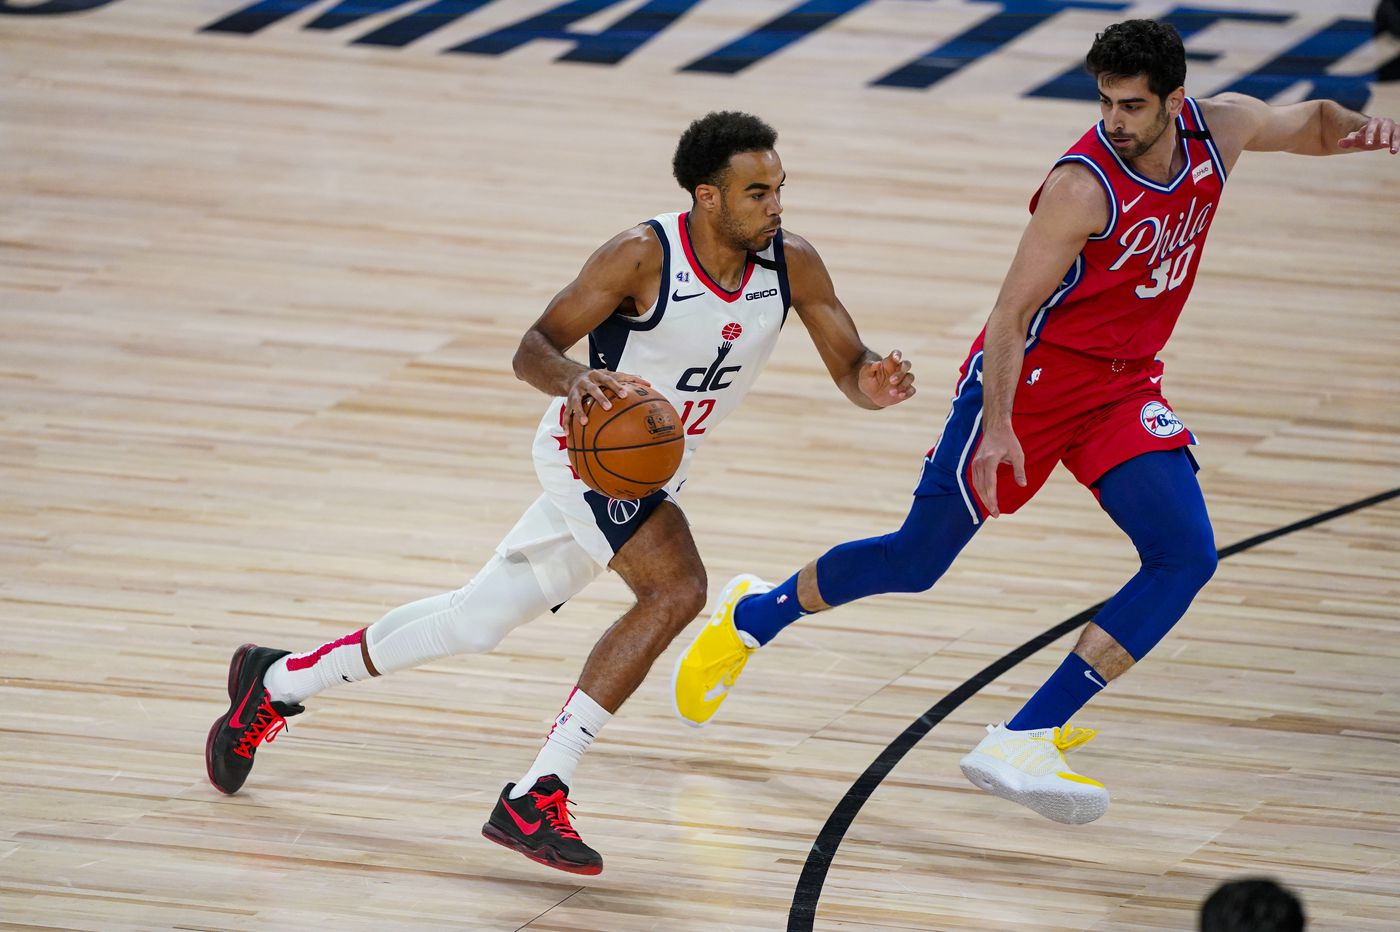 The Sixers' Furkan Korkmaz is ready to show what he can do at both ends of the court vs. the Celtics